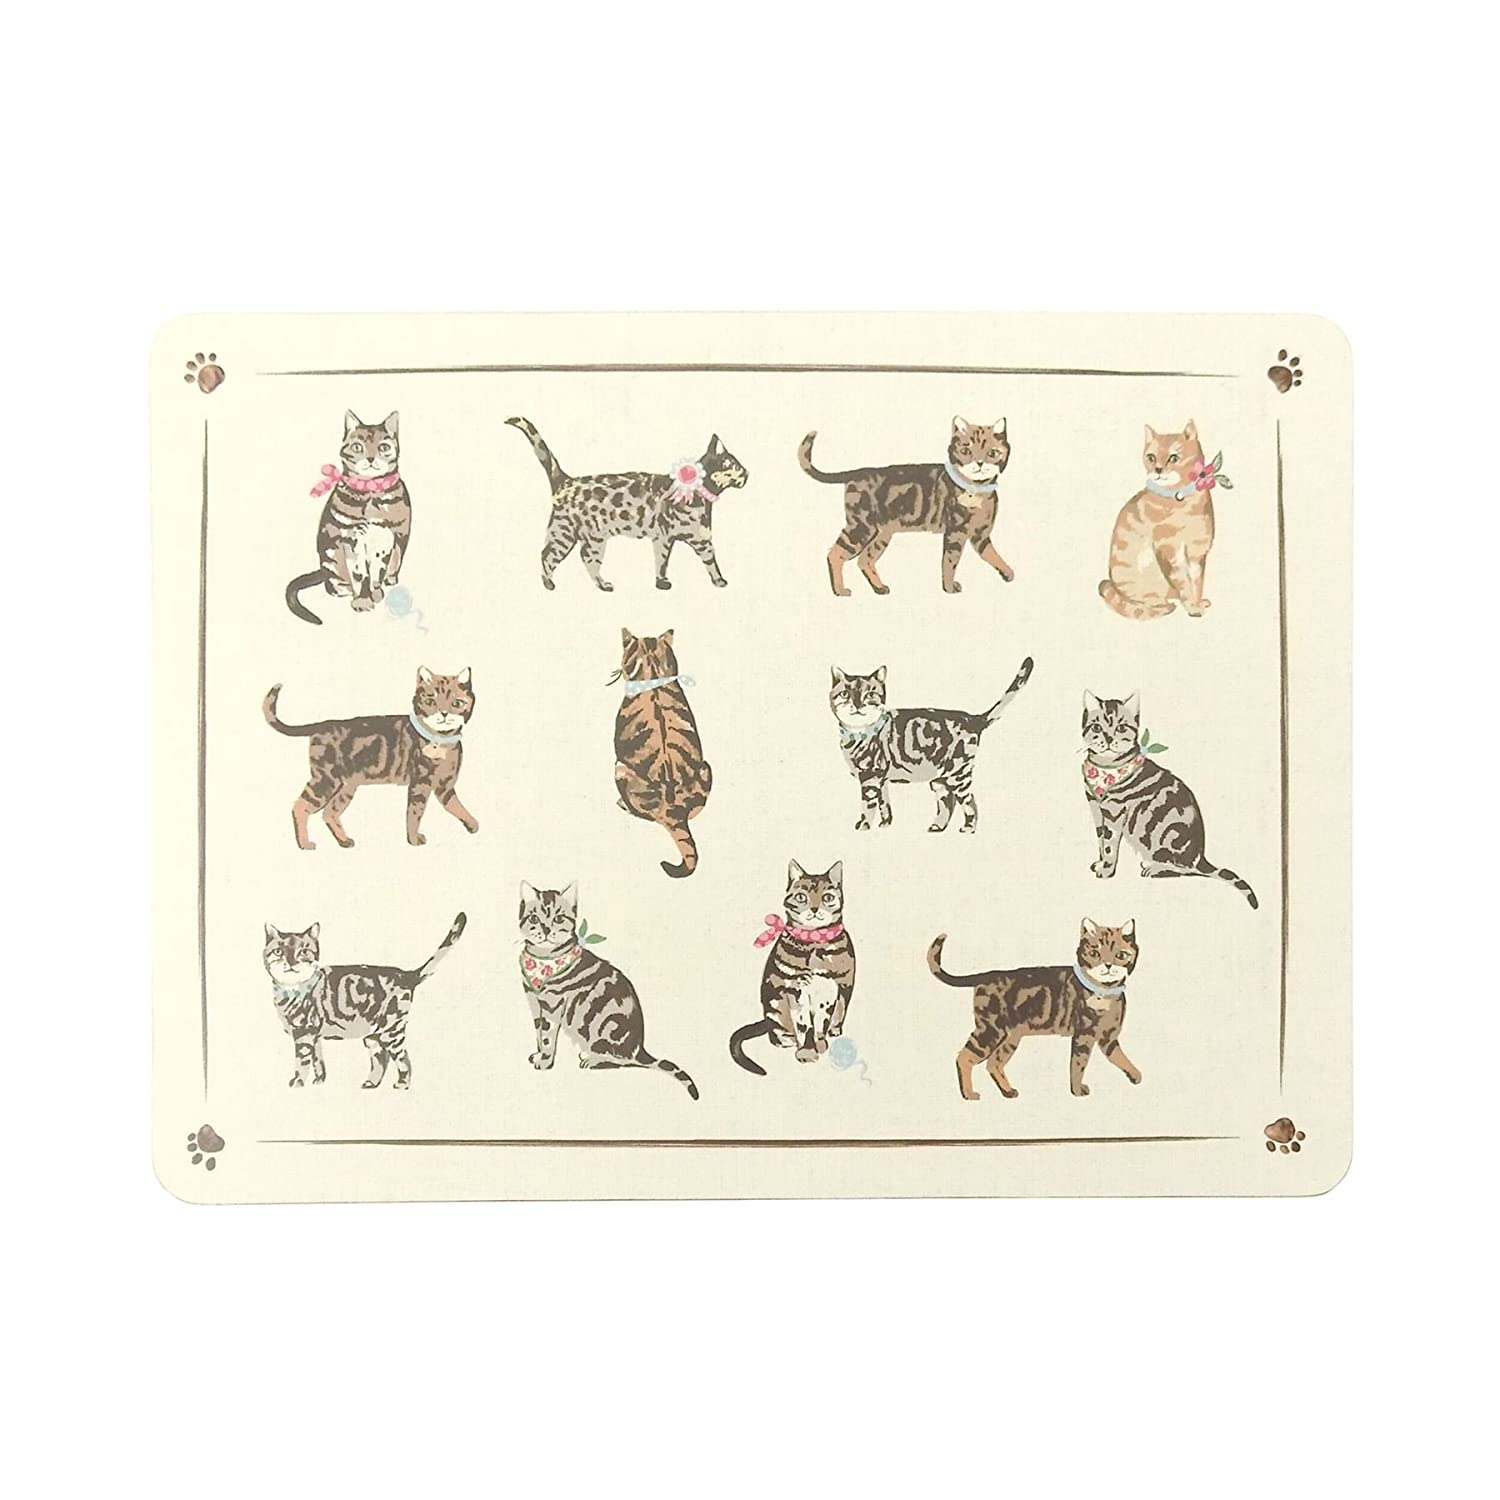 4 X LUXURY DINING PLACEMATS COLOURFUL TABBY TOM GINGER CATS KITTENS CORK BACKED Cats Unique